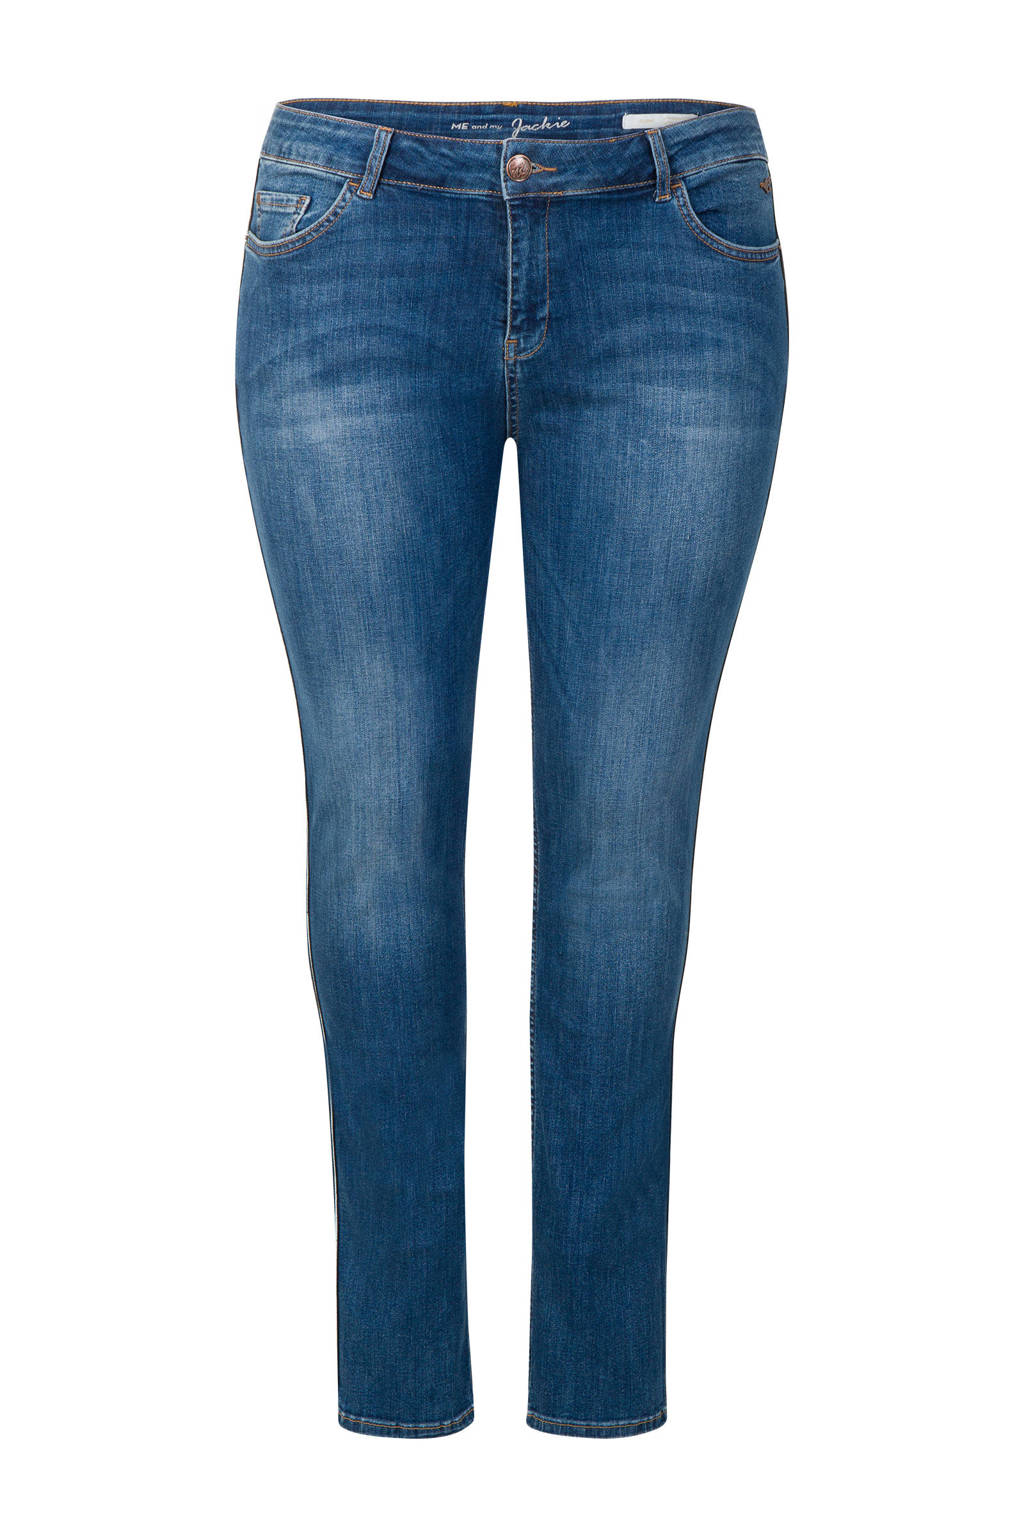 Miss Etam Plus high waist slim fit jeans blauw, Blauw